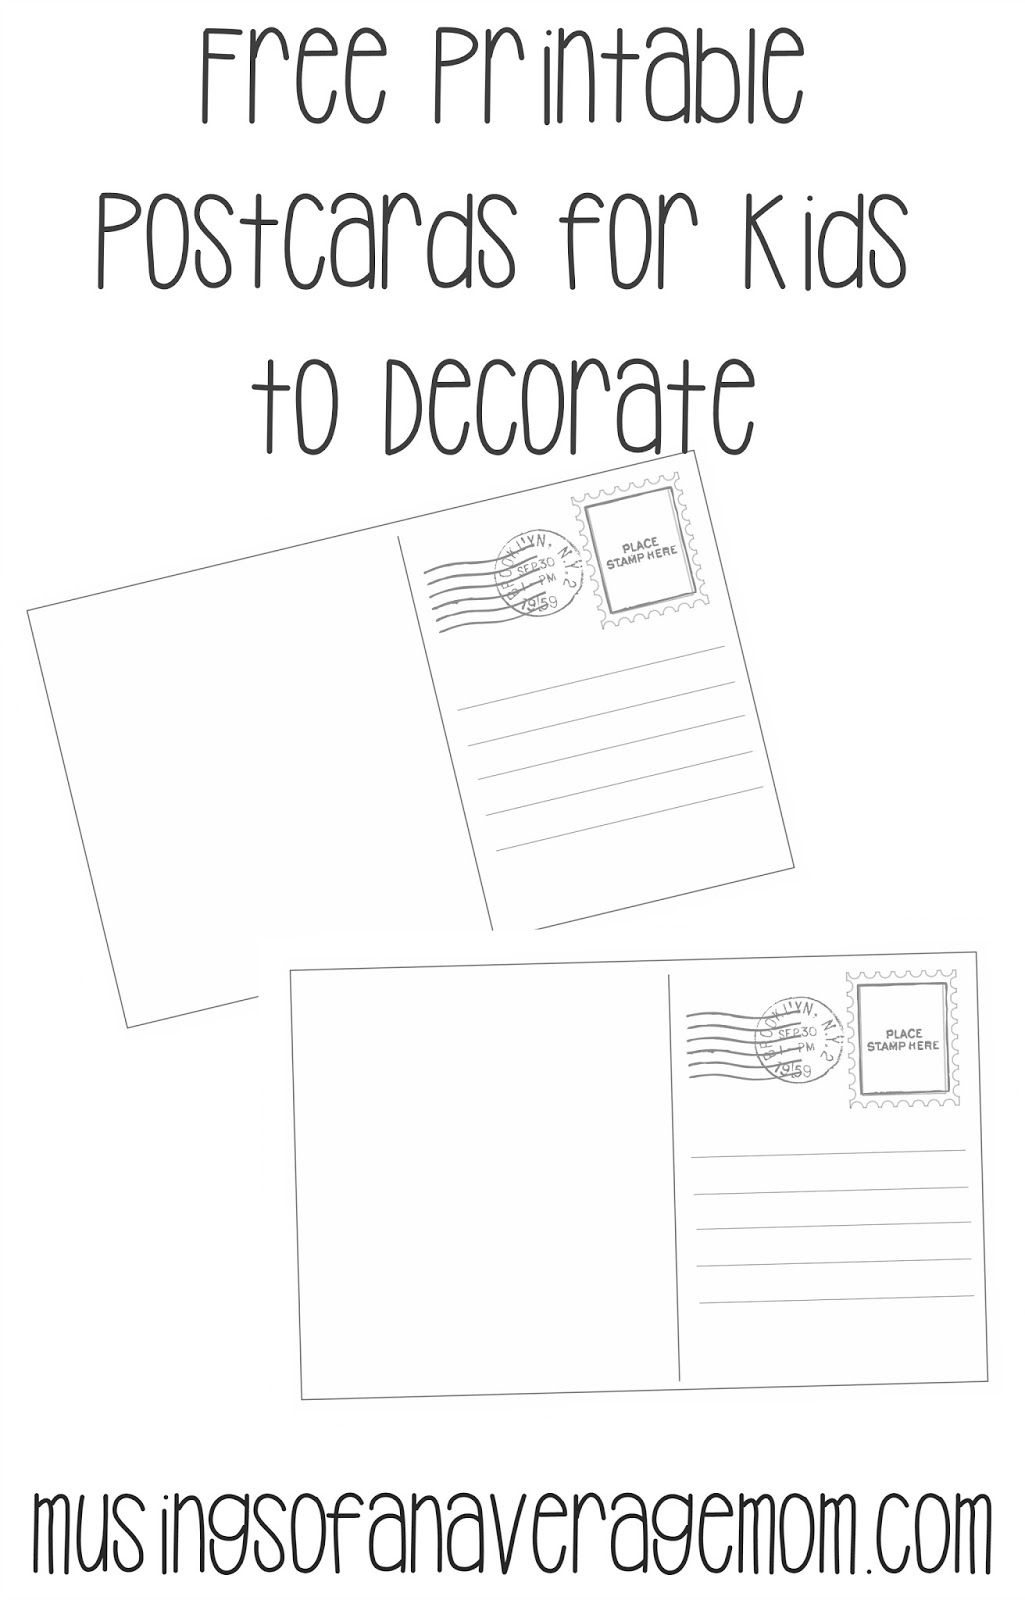 This is a picture of Printable Postcards Templates in downloadable